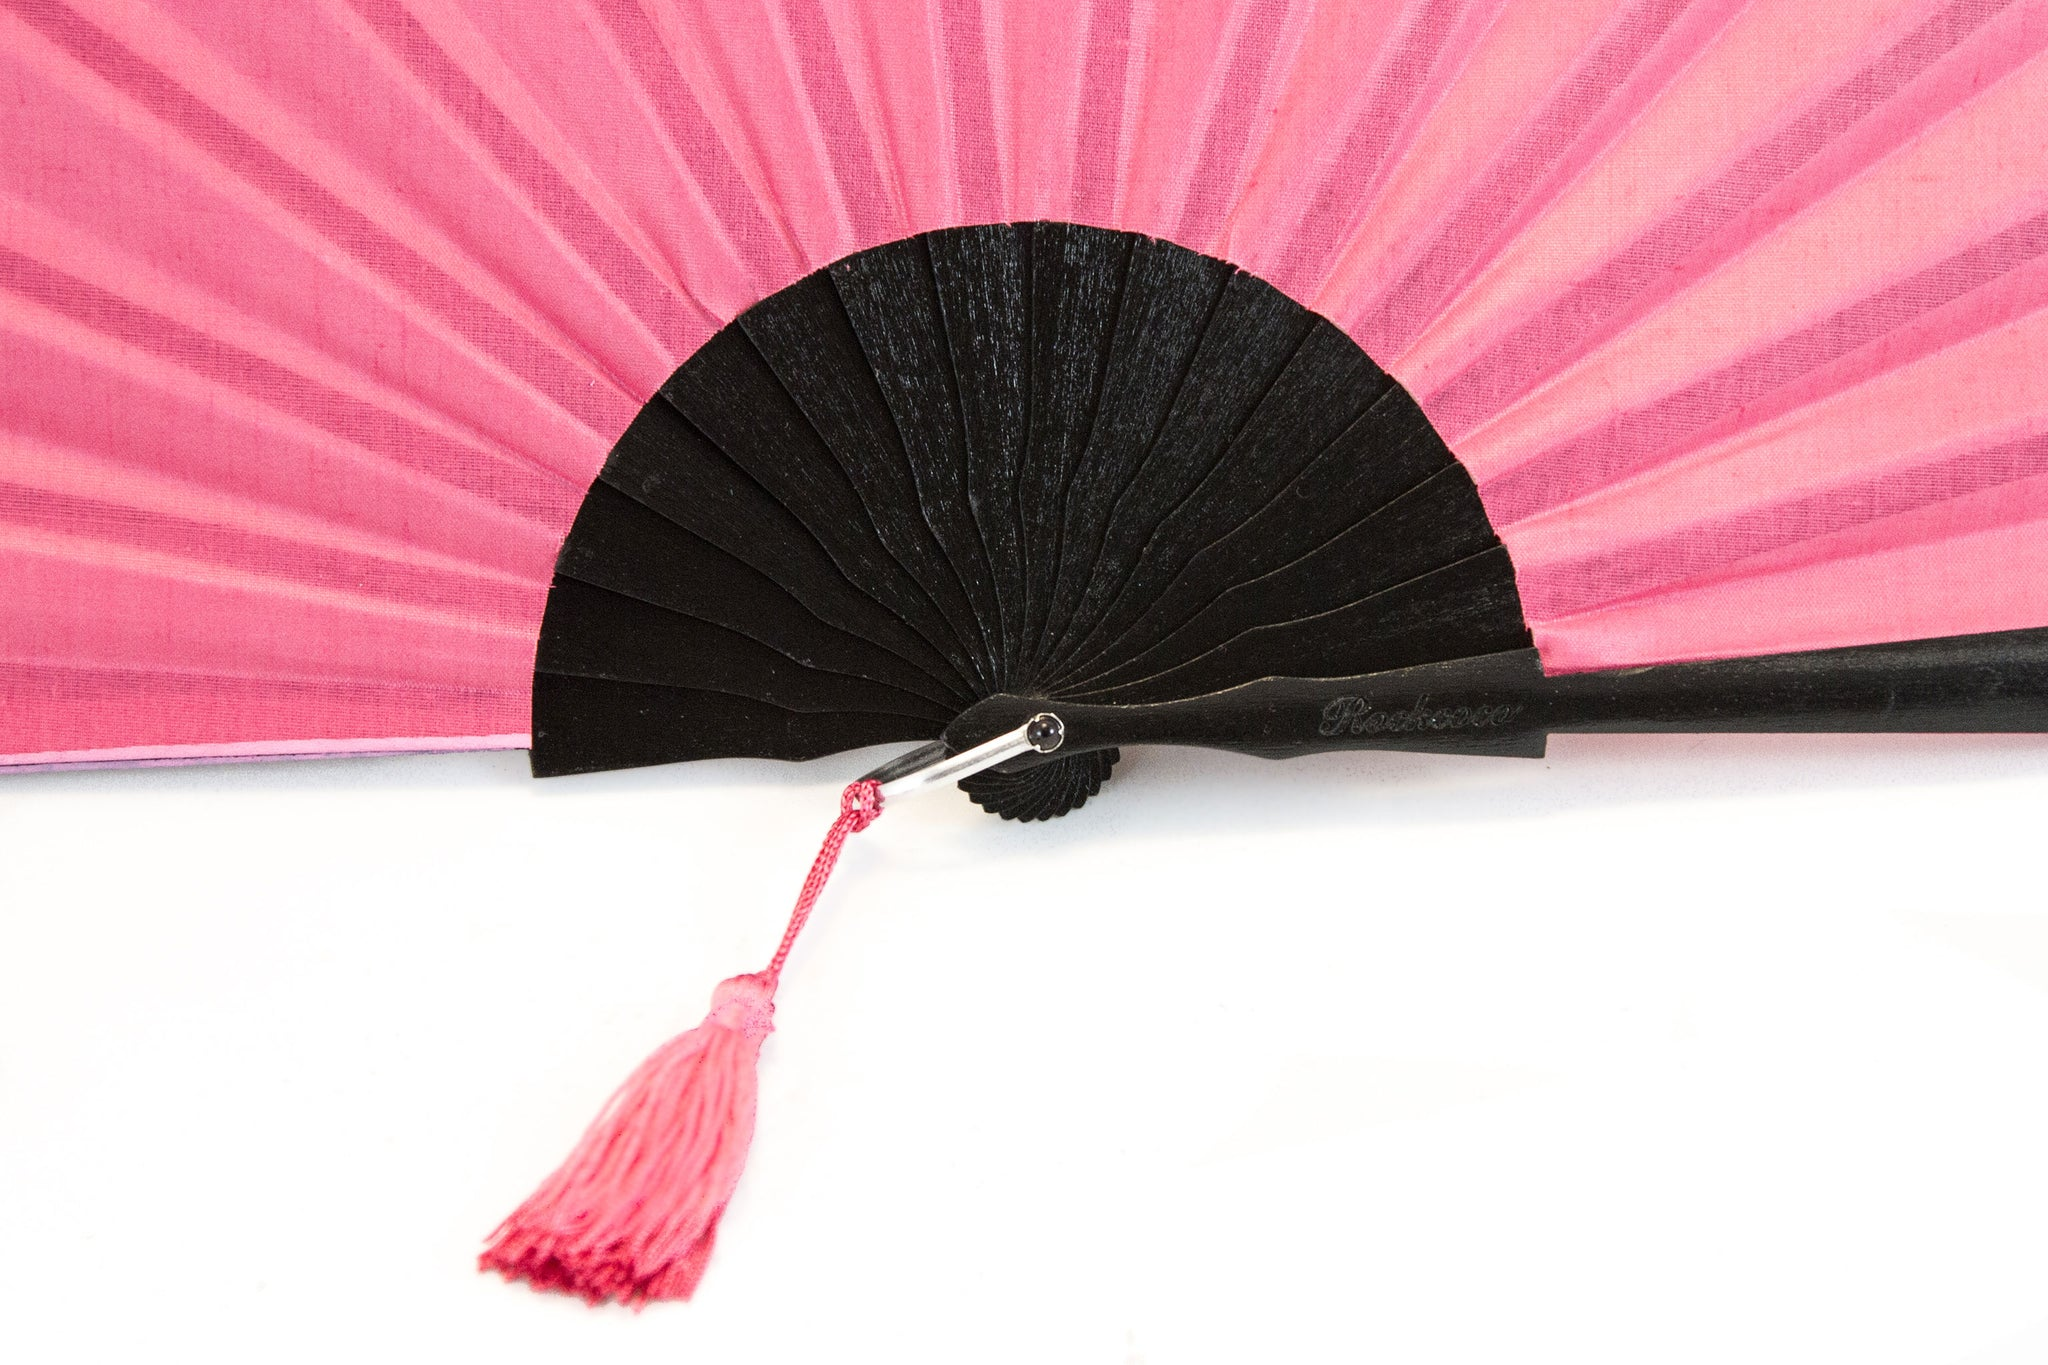 Rockcoco fans Pink Glastonbury festival fan with pink tassel